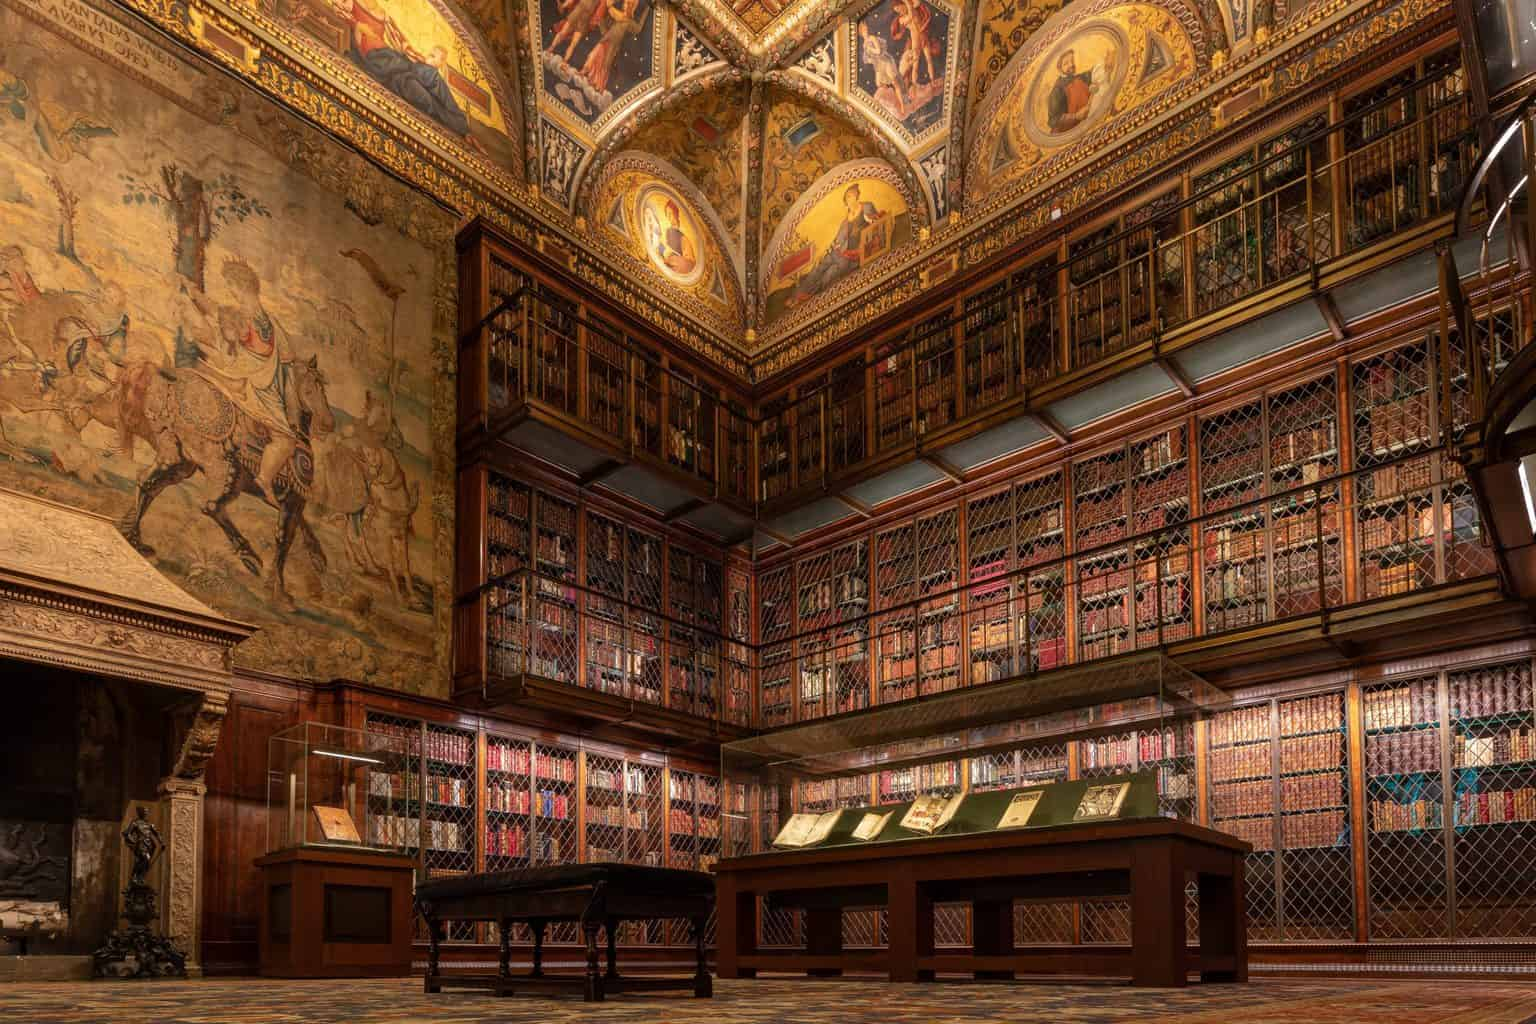 The vast antique library in the Morgan Library.